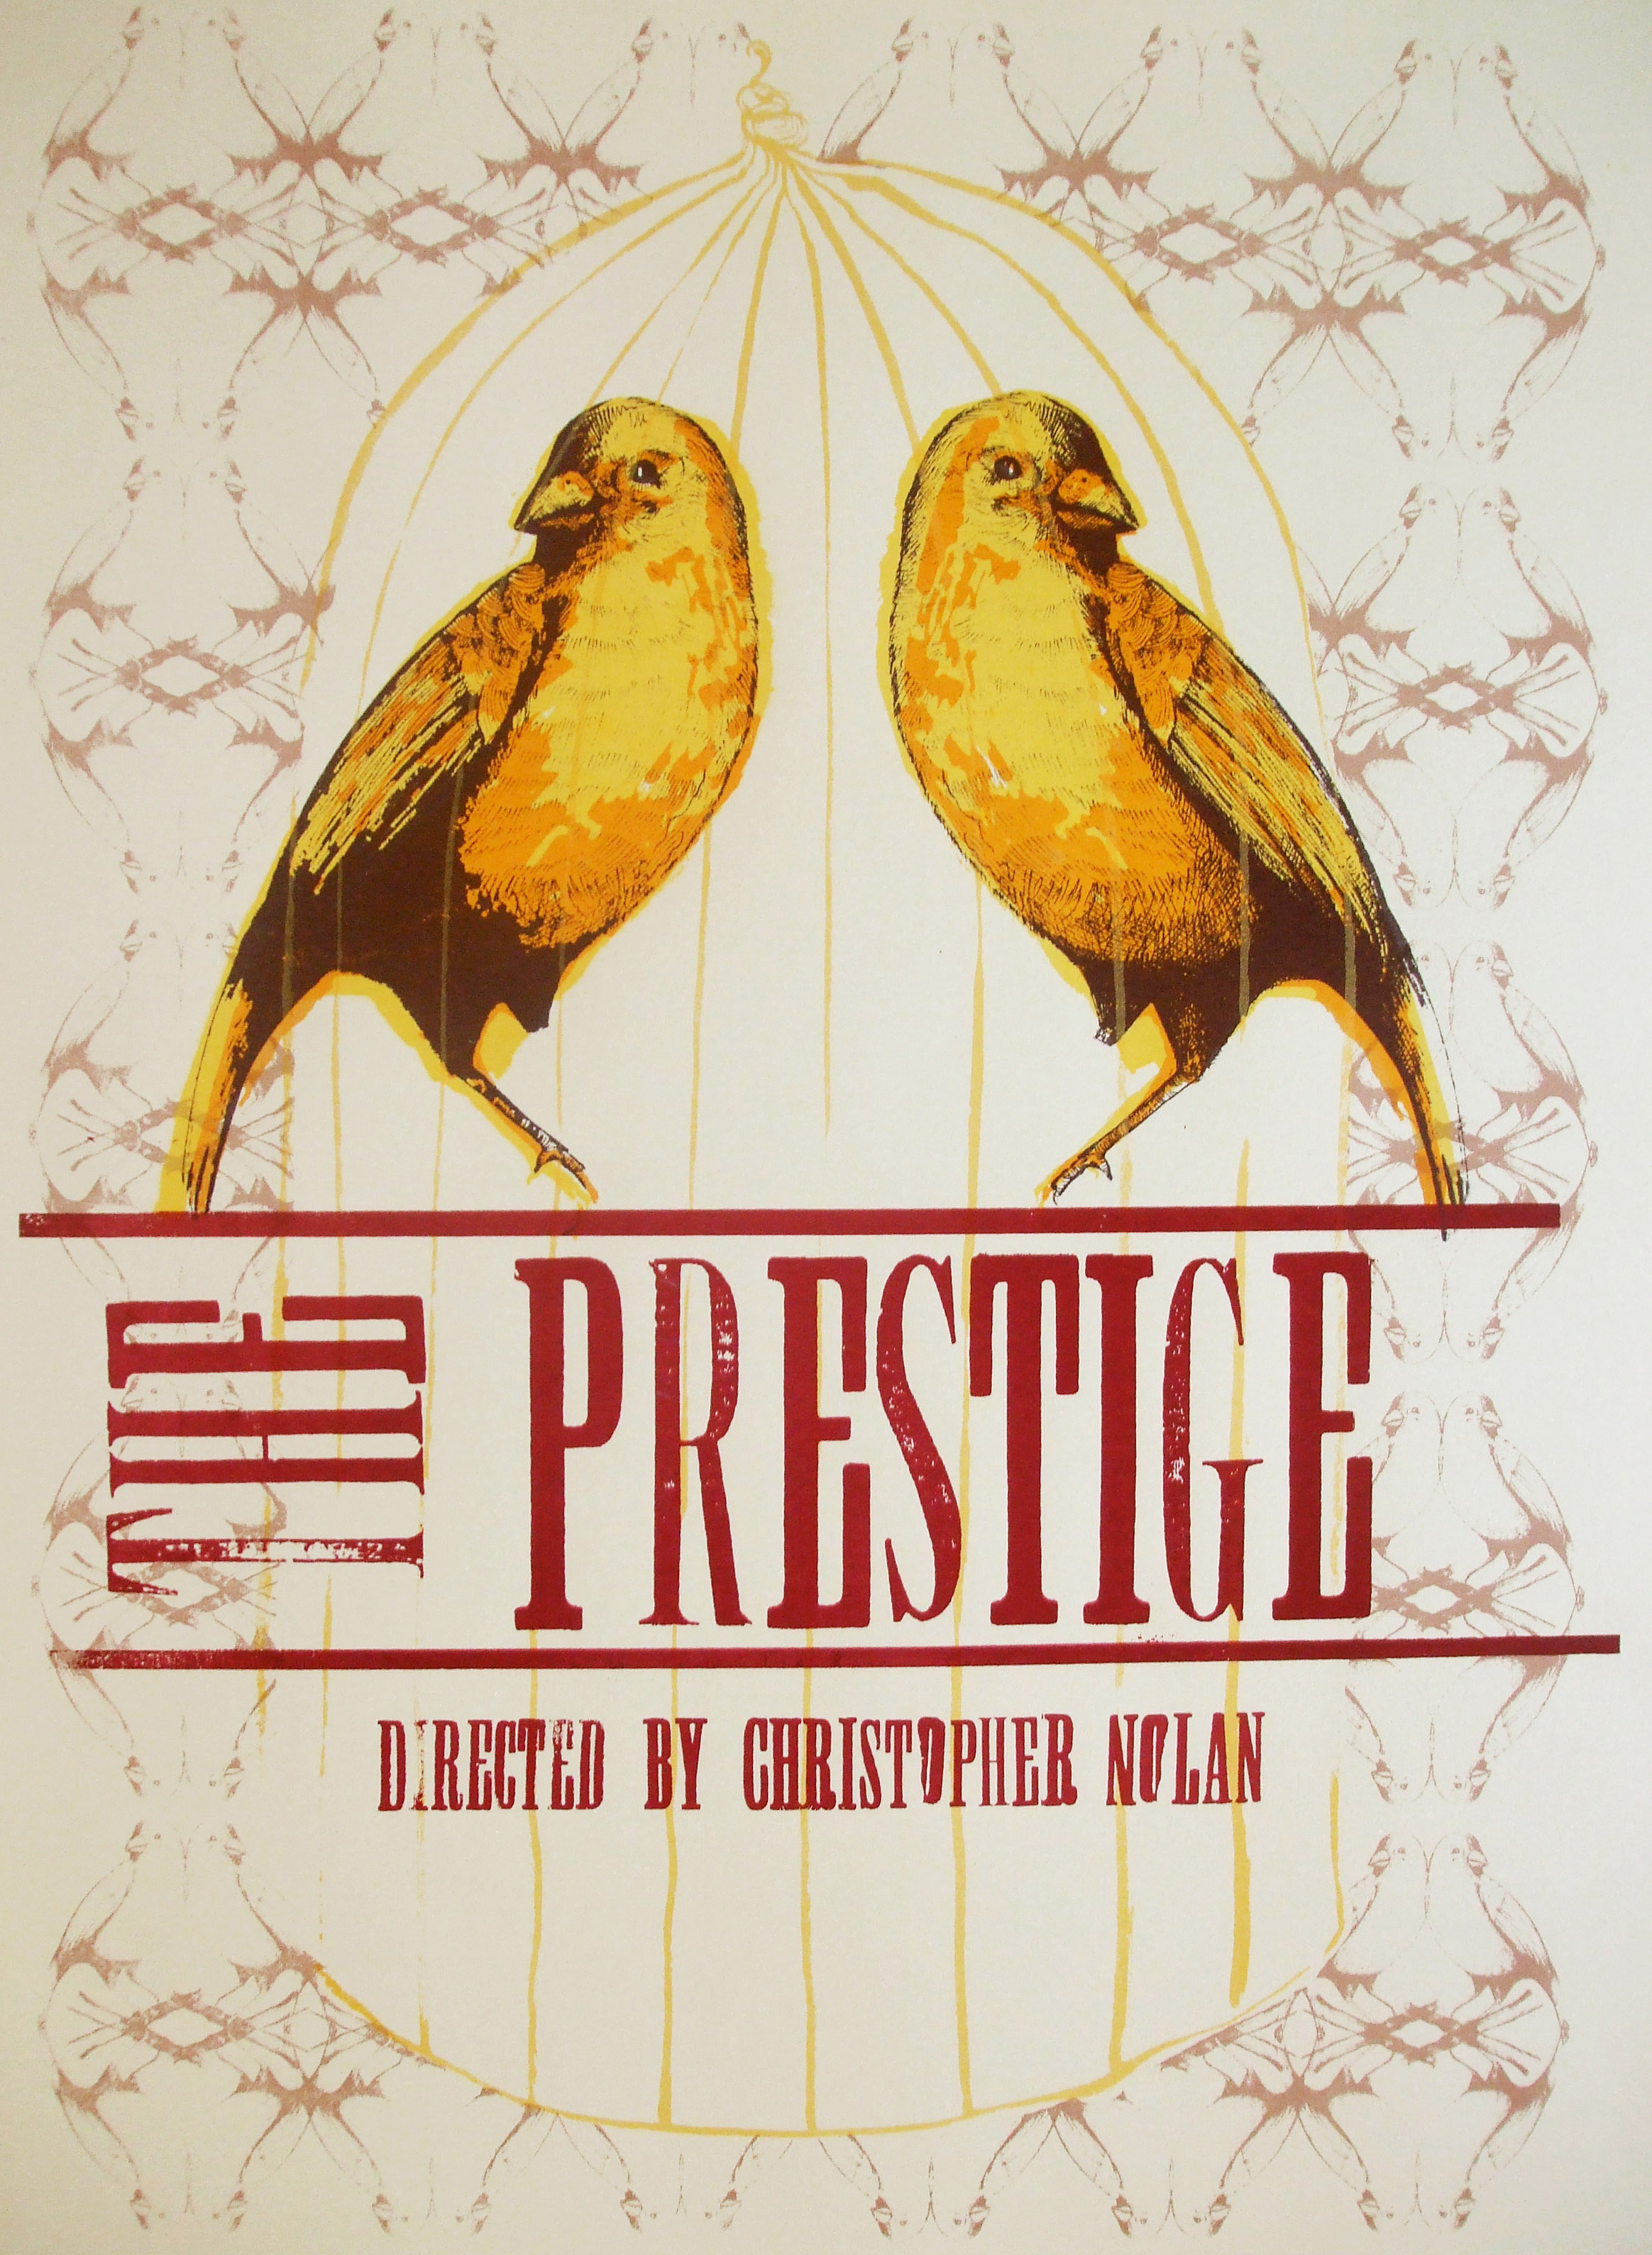 An alternative movie poster for The Prestige, for an exhibition in the Filmhouse Edinburgh. The design was screen-printed and typeset by hand.